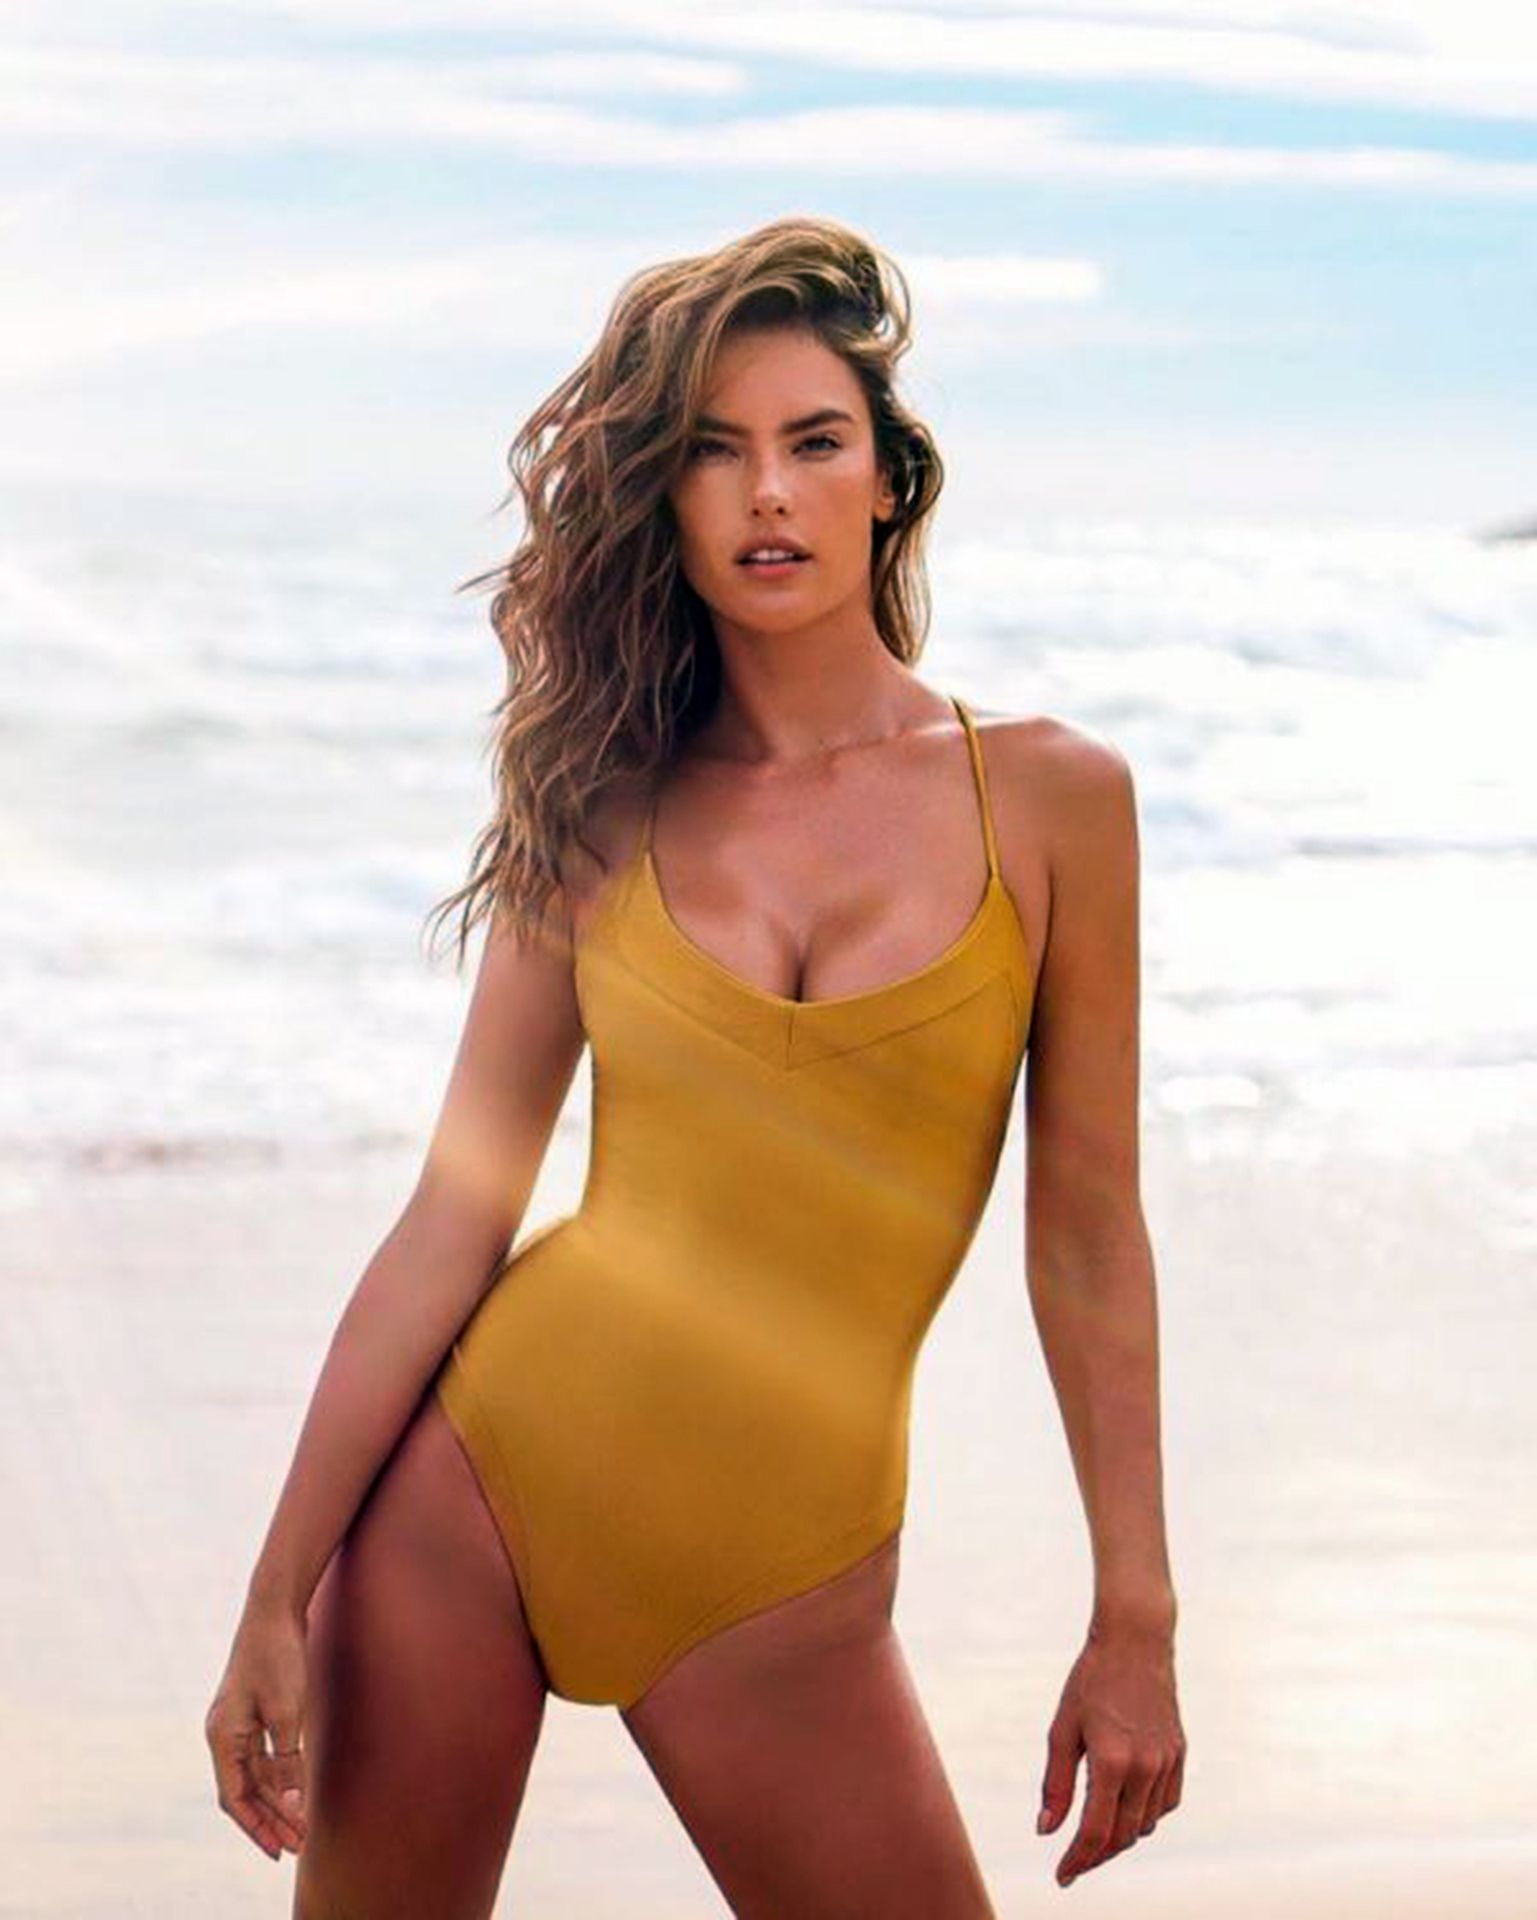 Alessandra Ambrosio Presents The New Campaign Of Her Brand Gal Floripa 0007